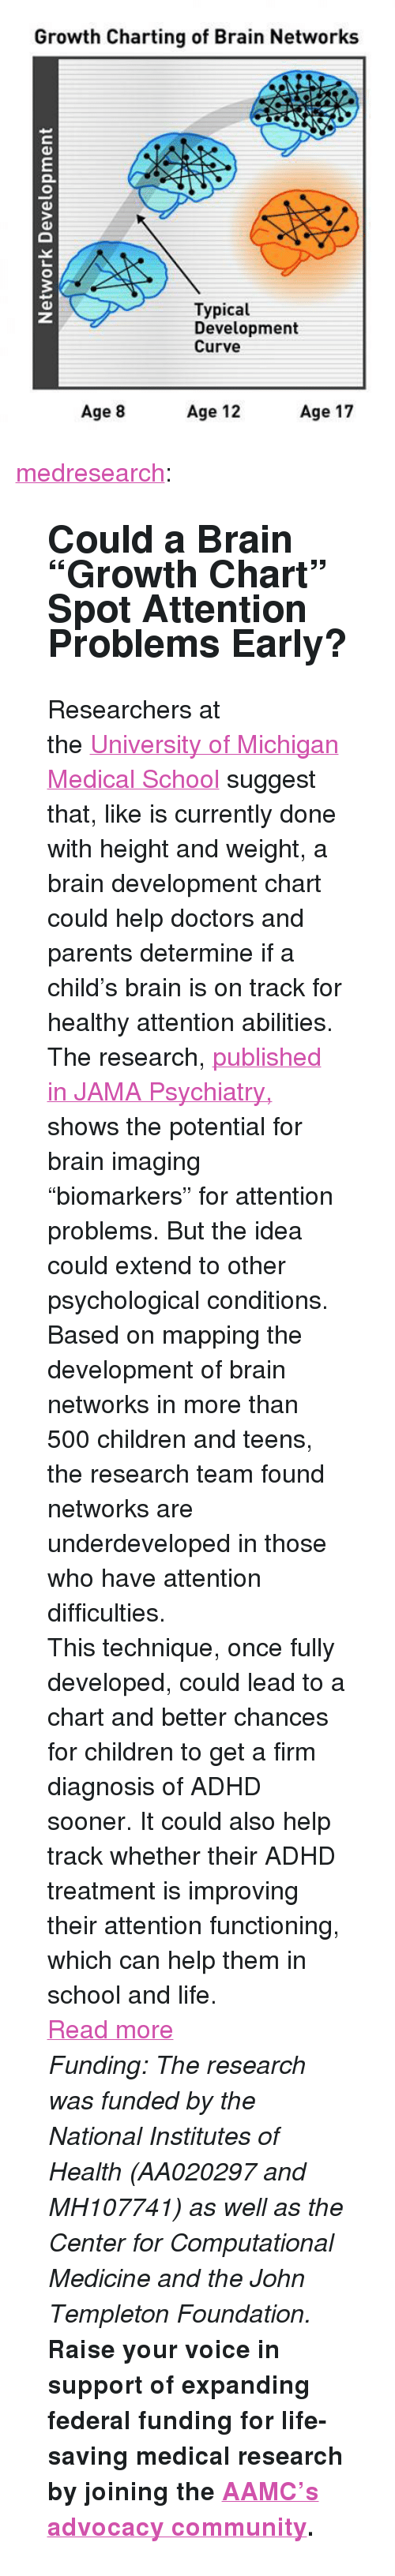 "Children, Community, and Curving: Growth Charting of Brain Networks  Typical  Development  Curve  3  Age 8  Age 12  Age 17 <p><a href=""http://medresearch.tumblr.com/post/143342934359/could-a-brain-growth-chart-spot-attention"" class=""tumblr_blog"">medresearch</a>:</p>  <blockquote><h2> Could a Brain ""Growth Chart"" Spot Attention Problems Early?  </h2><p>Researchers at the <a href=""https://medicine.umich.edu/medschool/"">University of Michigan Medical School</a> suggest that, like is currently done with height and weight, a brain development chart could help doctors and parents determine if a child's brain is on track for healthy attention abilities.</p><p>The research, <a href=""http://archpsyc.jamanetwork.com/article.aspx?articleid=2513687"">published in JAMA Psychiatry,</a> shows the potential for brain imaging ""biomarkers"" for attention problems. But the idea could extend to other psychological conditions.</p><p>Based on mapping the development of brain networks in more than 500 children and teens, the research team found networks are underdeveloped in those who have attention  difficulties.</p><p>This technique, once fully developed, could lead to a chart and better chances for  children to get a firm diagnosis of ADHD sooner. It could also help  track whether their ADHD treatment is improving their attention  functioning, which can help them in school and life.</p><p><a href=""http://The%20research,%20published%20in%20JAMA%20Psychiatry,%20shows%20the%20potential%20for%20brain%20imaging%20%E2%80%9Cbiomarkers%E2%80%9D%20for%20attention%20problems.%20But%20the%20idea%20could%20extend%20to%20other%20psychological%20conditions."">Read more</a></p><p><i>Funding: The research was funded by the National Institutes of Health  (AA020297 and MH107741) as well as the Center for Computational Medicine  and the John Templeton Foundation.</i></p><p>  <b>Raise your voice in support of expanding federal funding for life-saving medical research by joining the </b><b><a href=""http://t.umblr.com/redirect?z=http%3A%2F%2Fwww.aamcaction.org%2Flanding%2Fresearch-means-hope&amp;t=MjQ4NjBiNzllMmMzZDhhMzFjZDVkNDljYTdlMGMzMWY3ZjY0ZTk3MCwyTkdVR0htSA%3D%3D"">AAMC's advocacy community</a>.</b>   <br/></p></blockquote>"